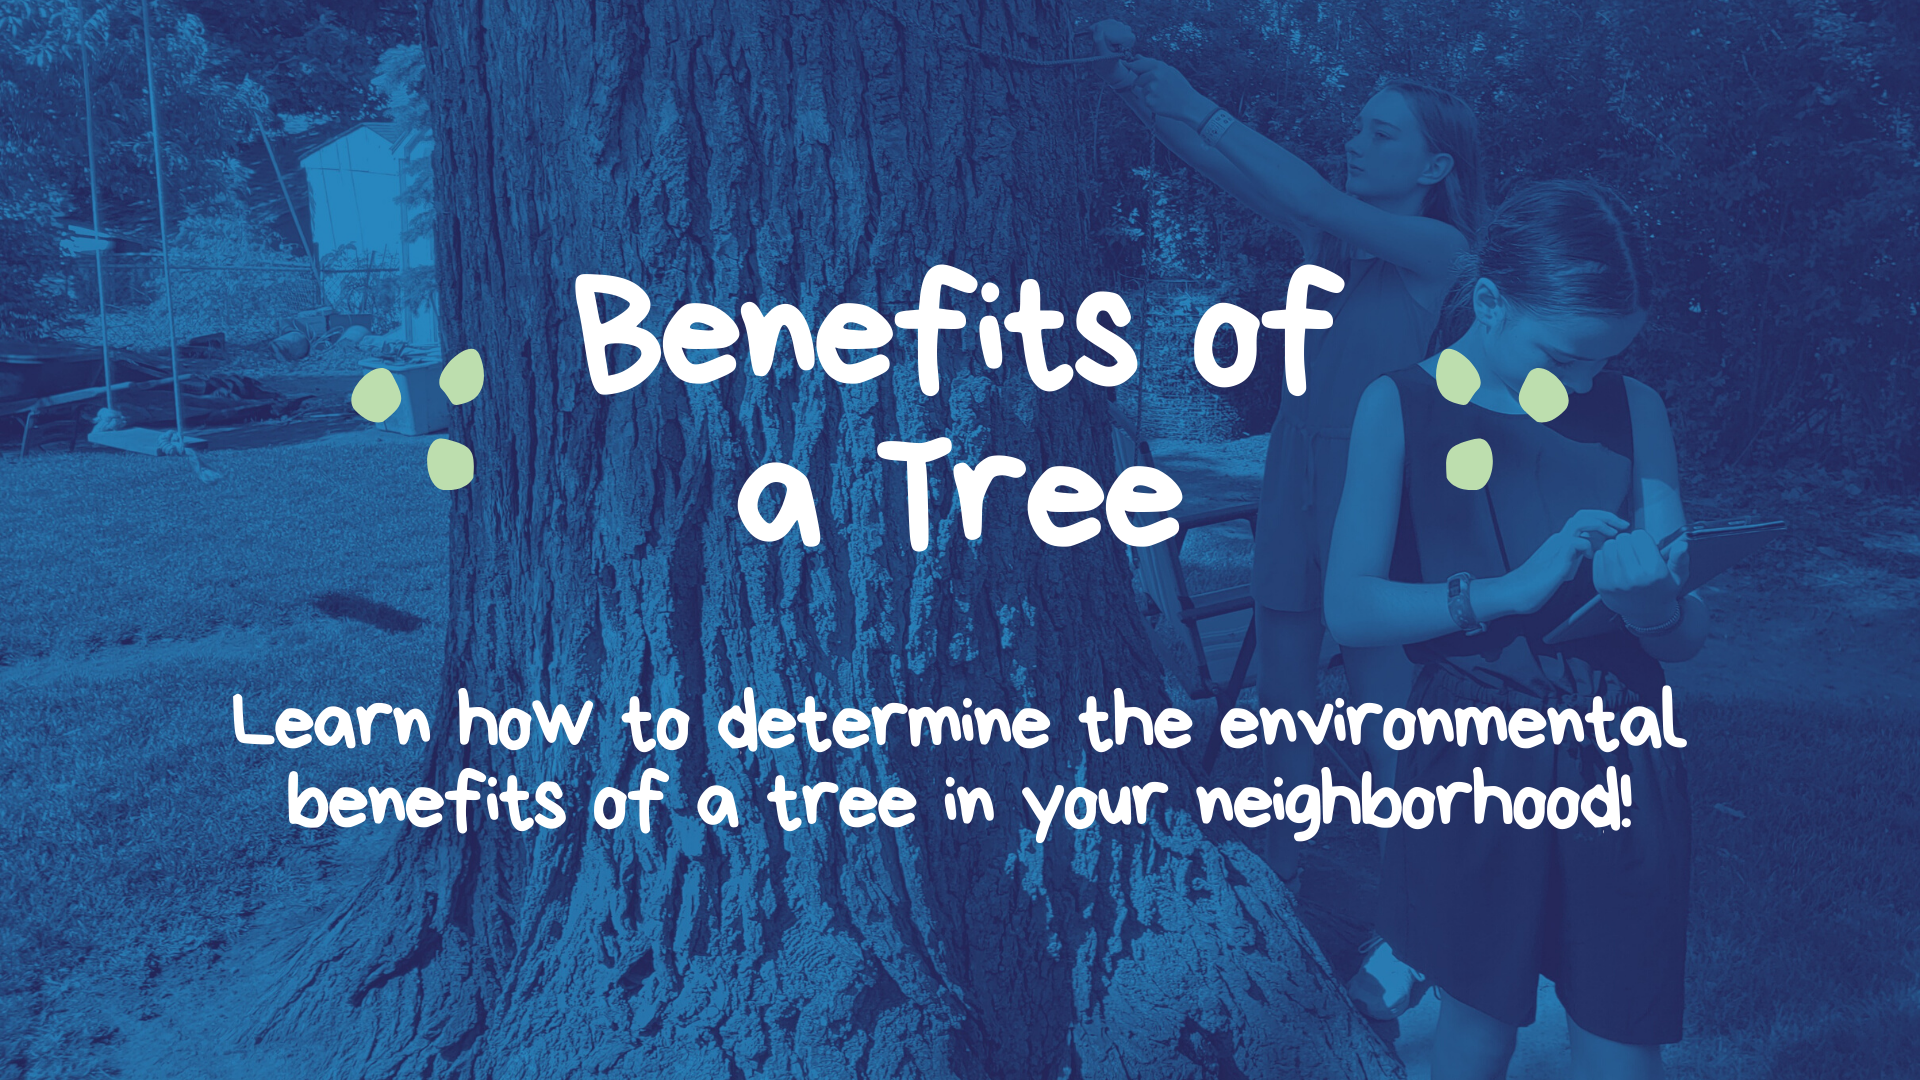 Benefits of a Tree